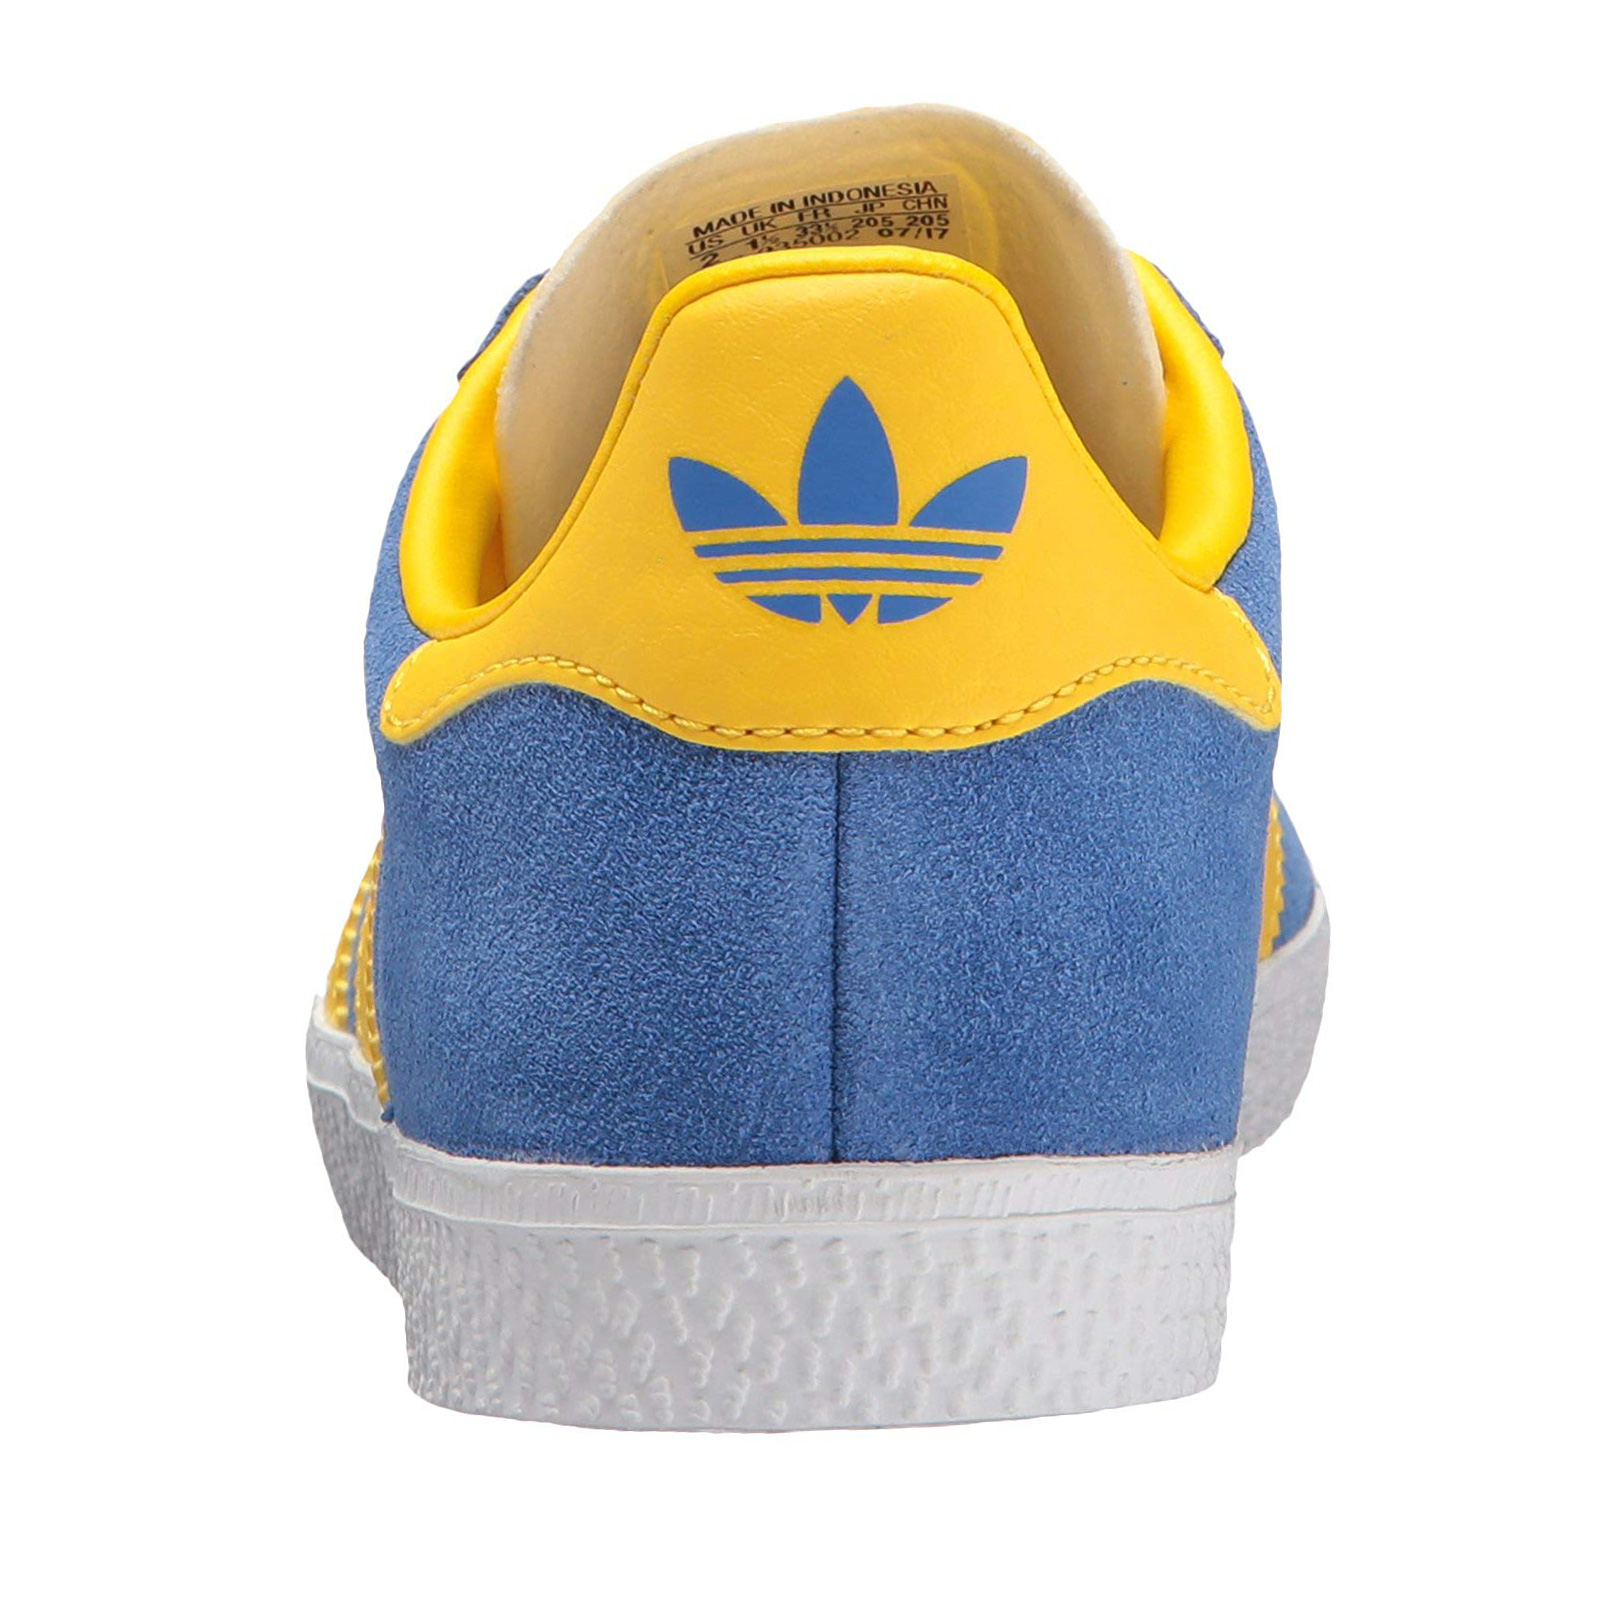 Details about Adidas Originals Gazelle Children's Sneakers Leather Shoes BY9550 Blue Yellow